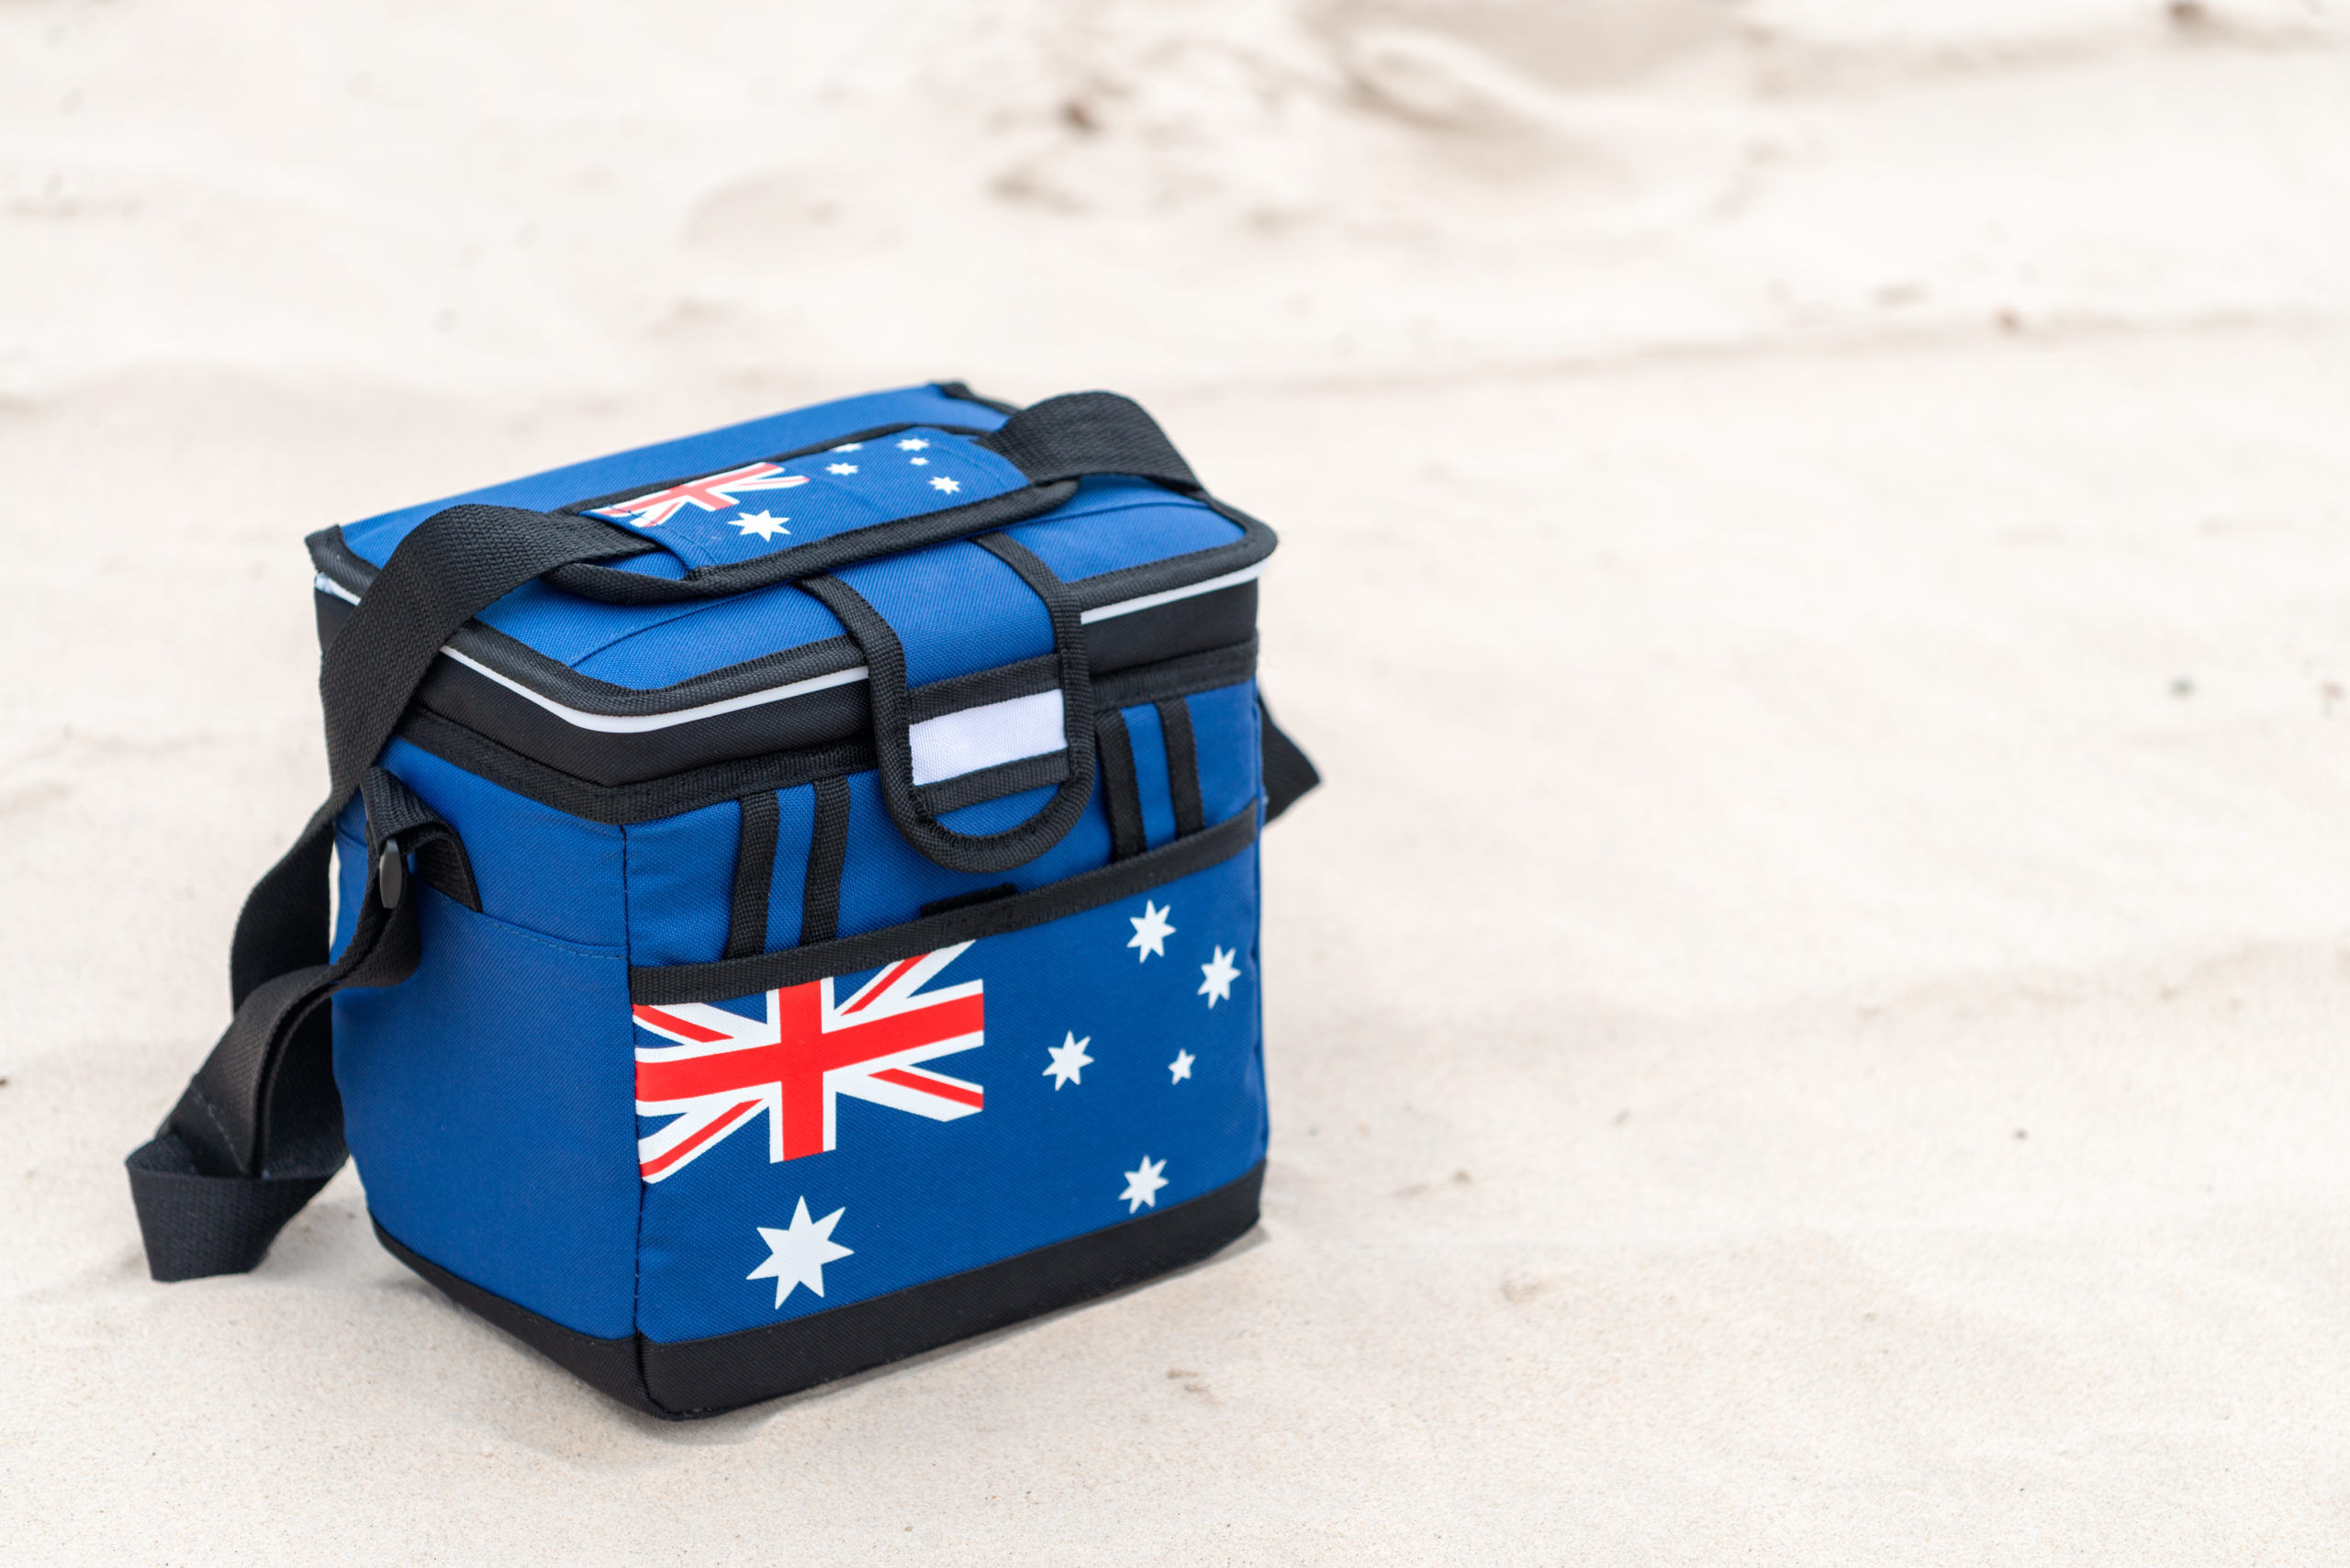 Things To Consider When Looking At Cooler Bag Design